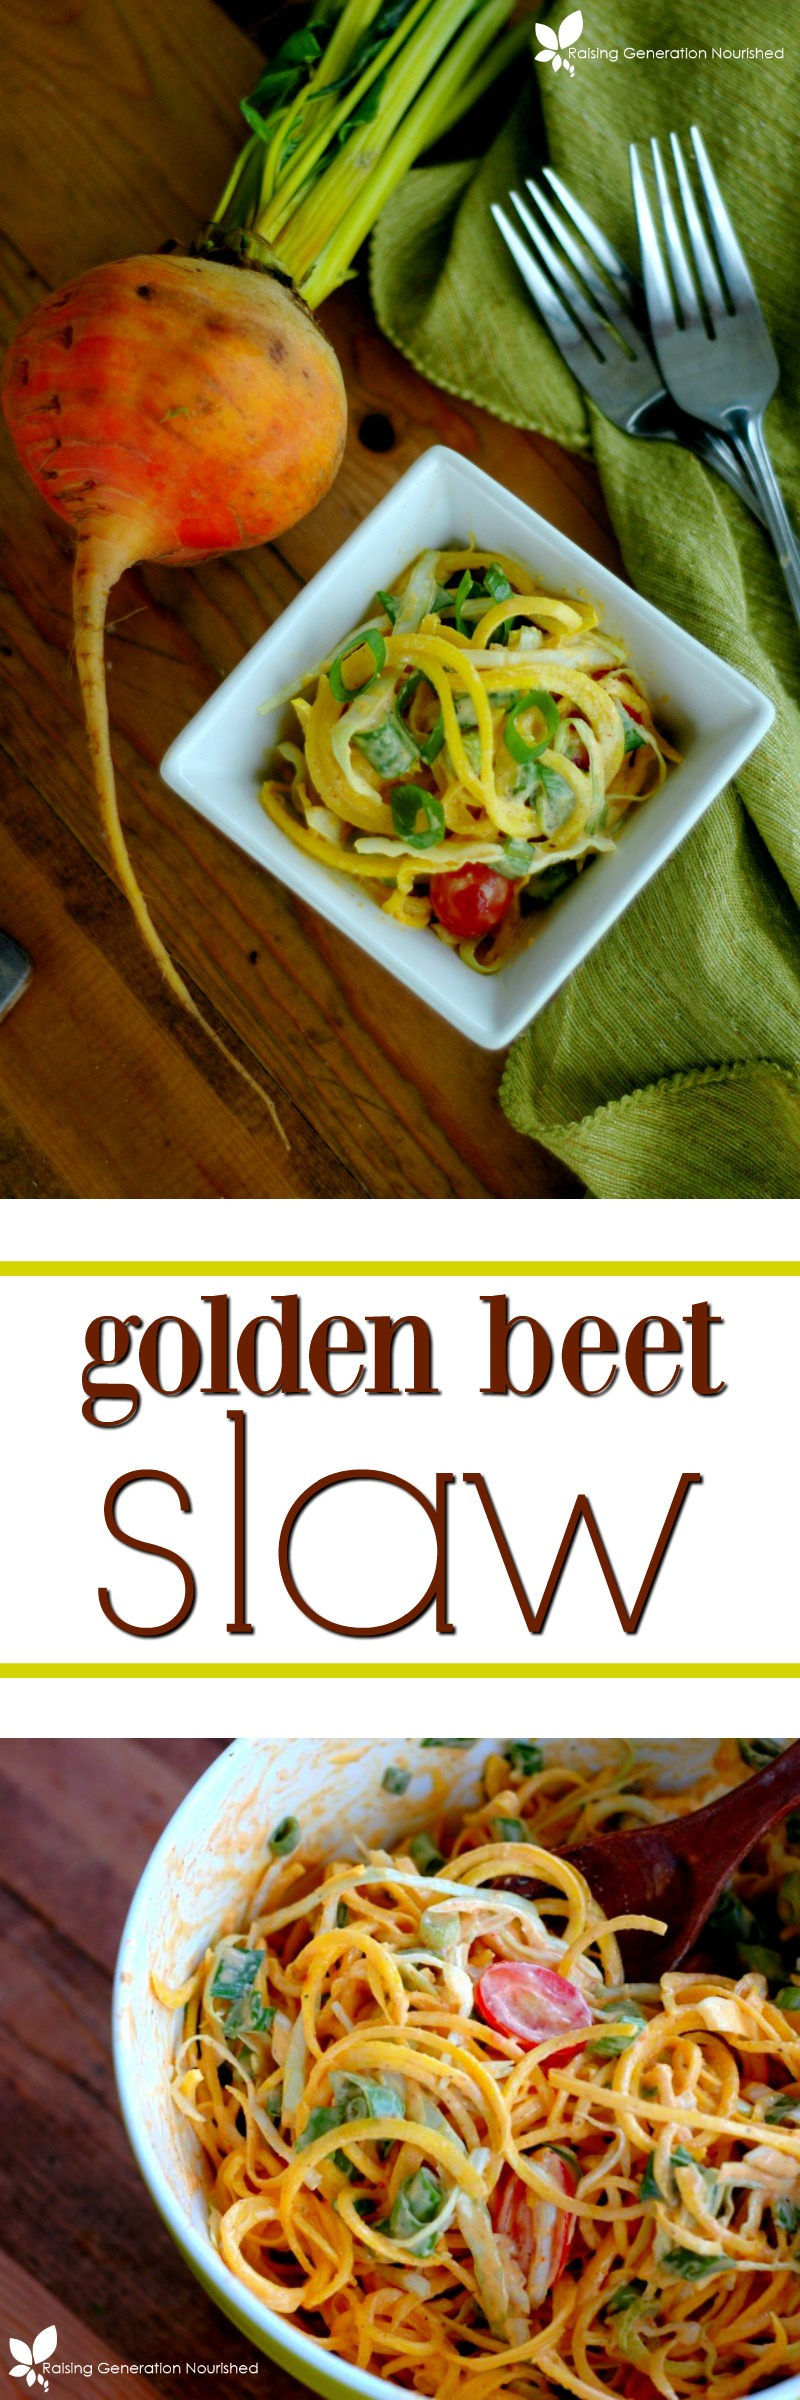 Golden Beet Slaw :: Fresh and mildly sweet golden beets tossed in a delicious creamy dressing make for a cool, crisp kid pleasing side!